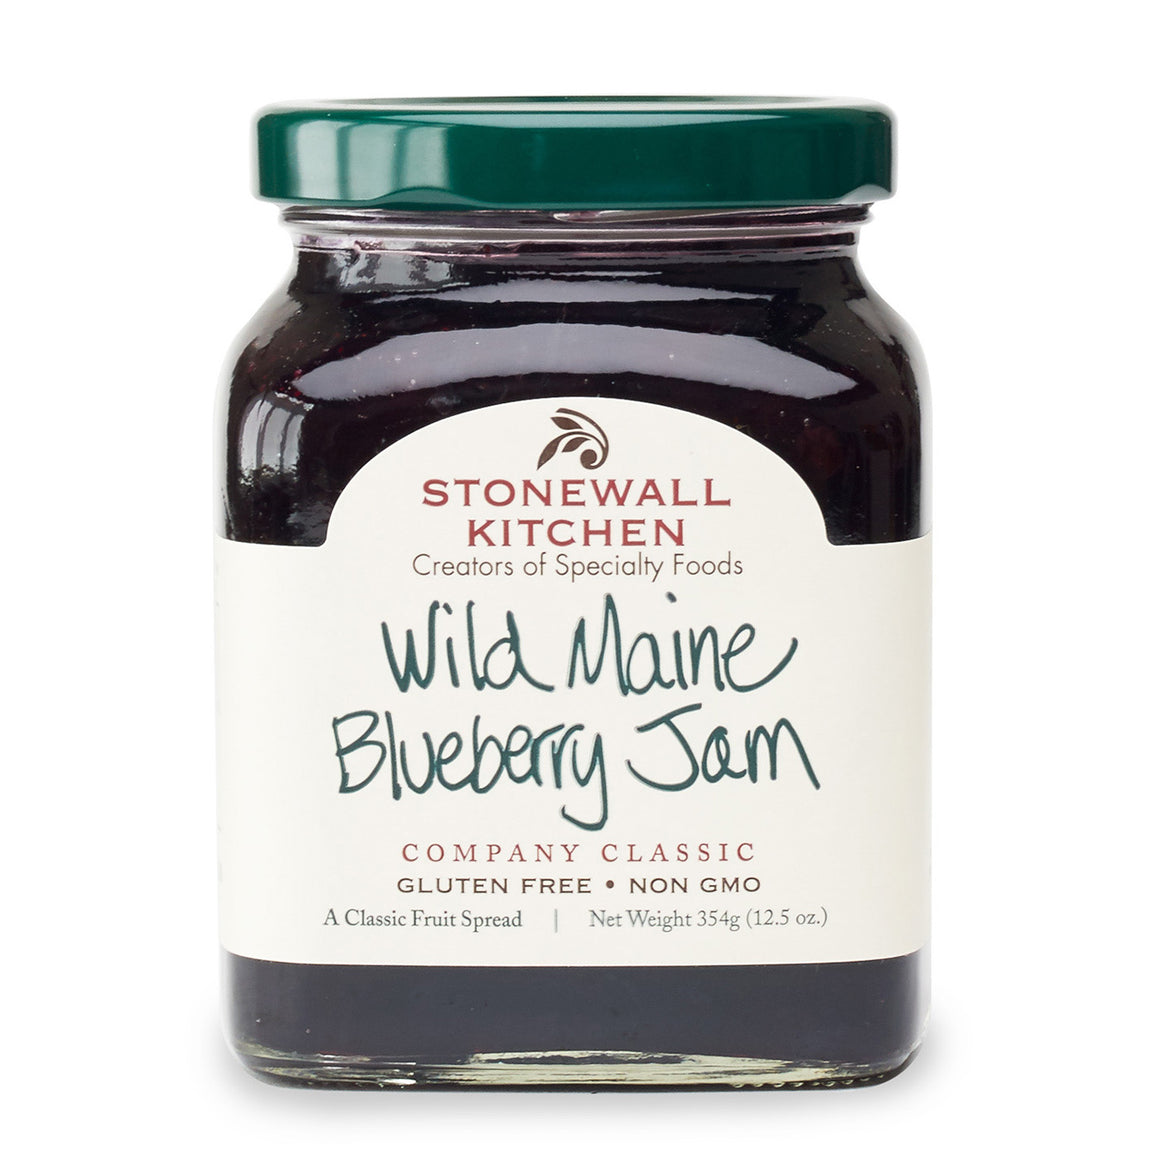 Wild Maine Blueberry Jam Stonewall Kitchen